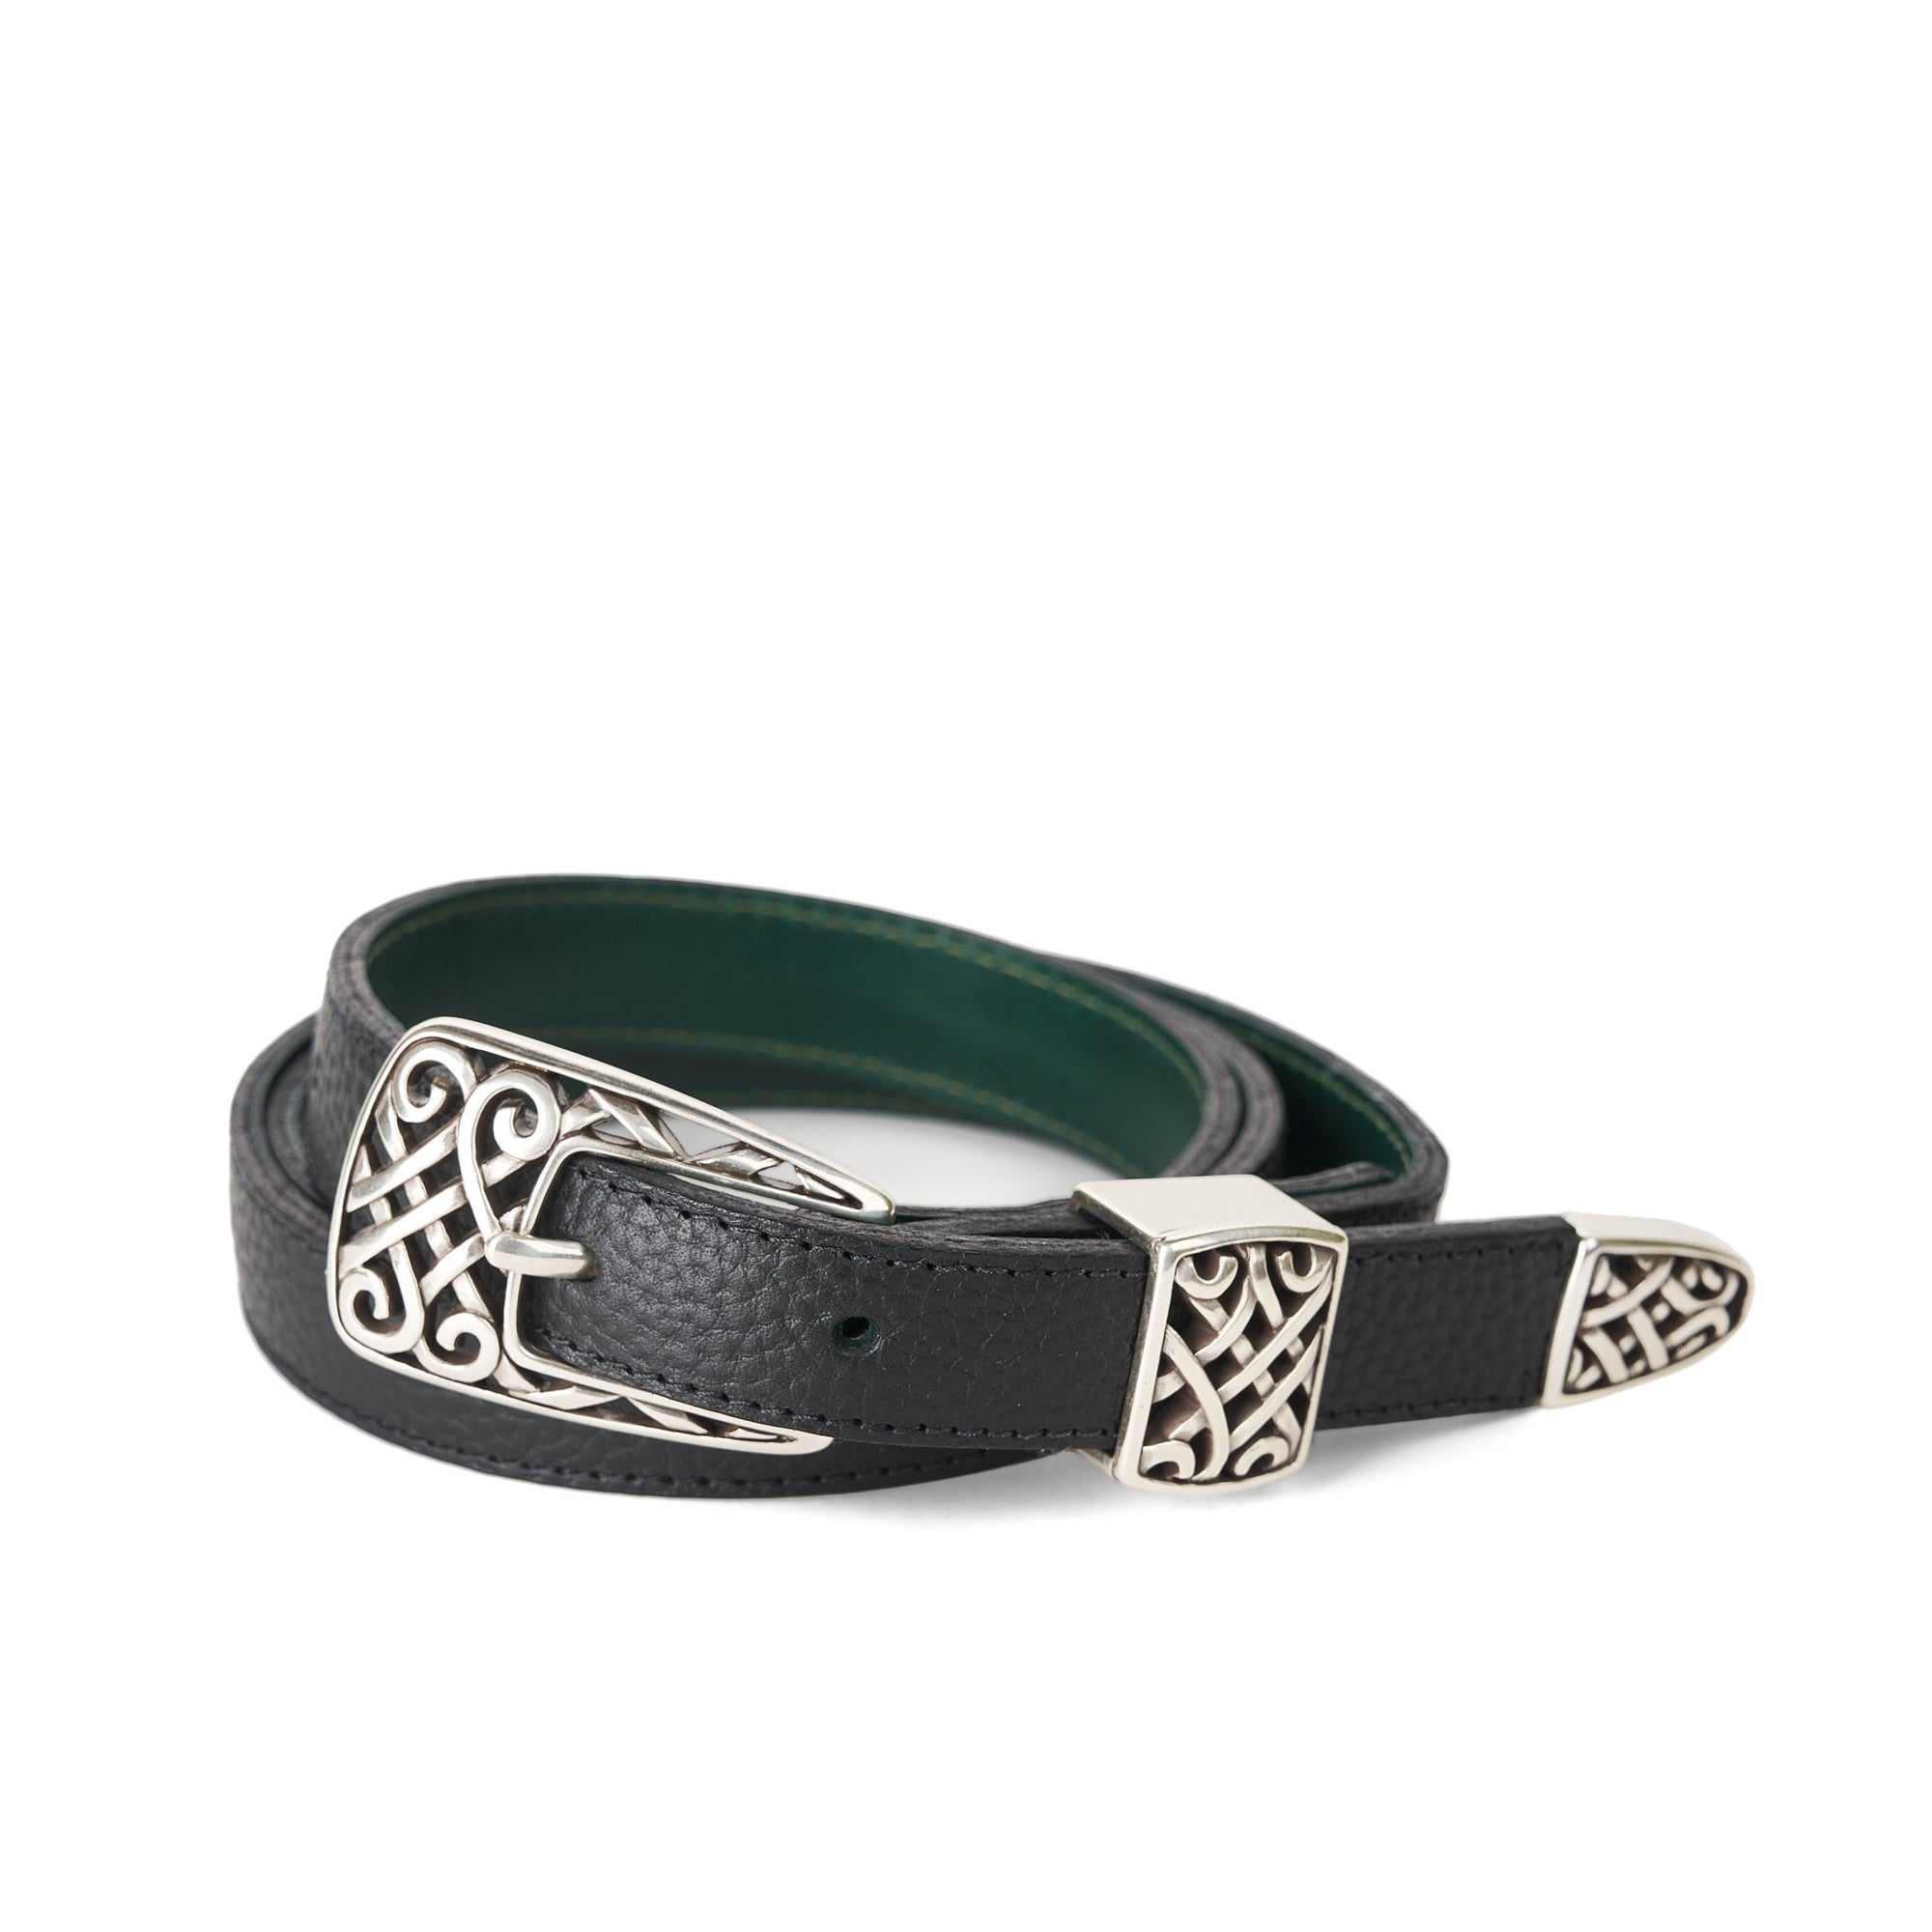 Holden Gallarus Celtic Belt - Black